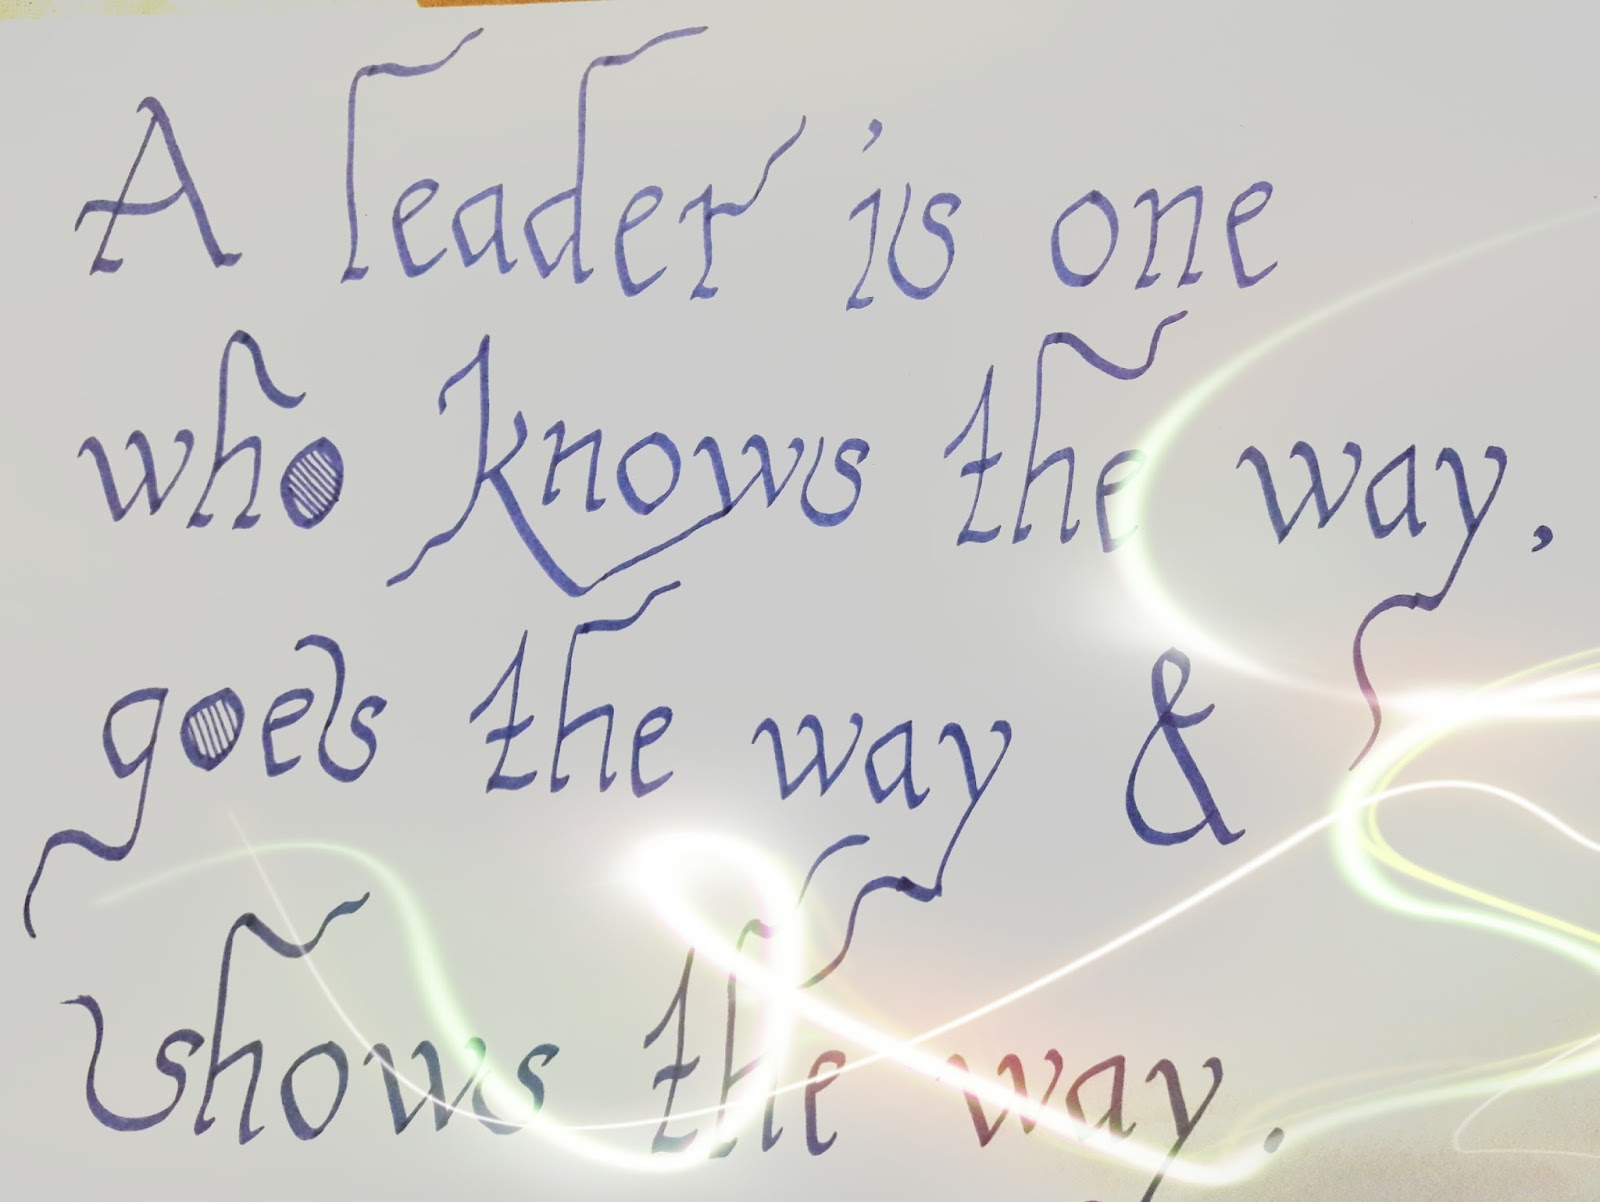 here are some of the thoughts written by me in calligraphy